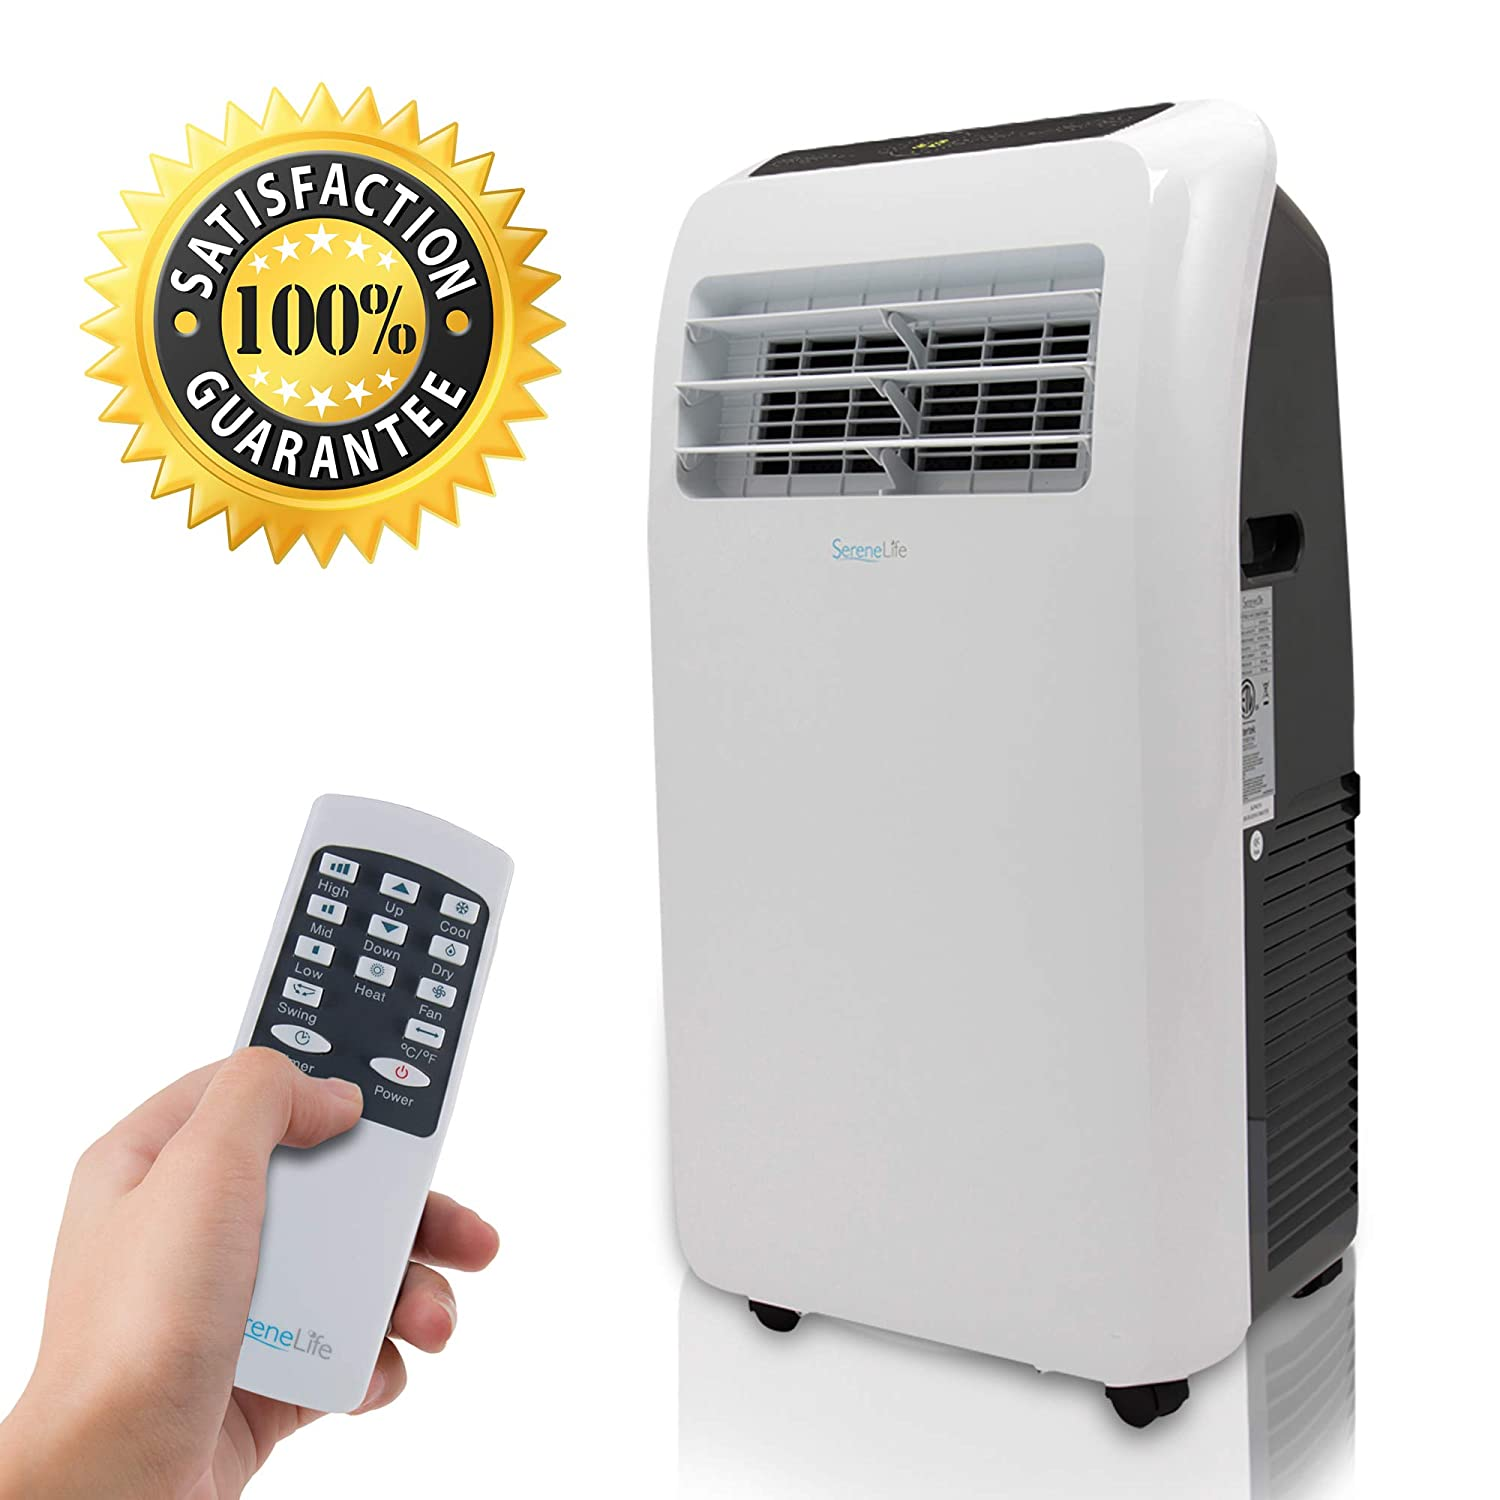 Ft Complete Window Exhaust Kit for Rooms Up to 350 Sq 9000 BTU Heater Fan Modes 4-in-1 AC Unit with Built-in Dehumidifier Remote Control SereneLife 10,000 BTU Portable Air Conditioner